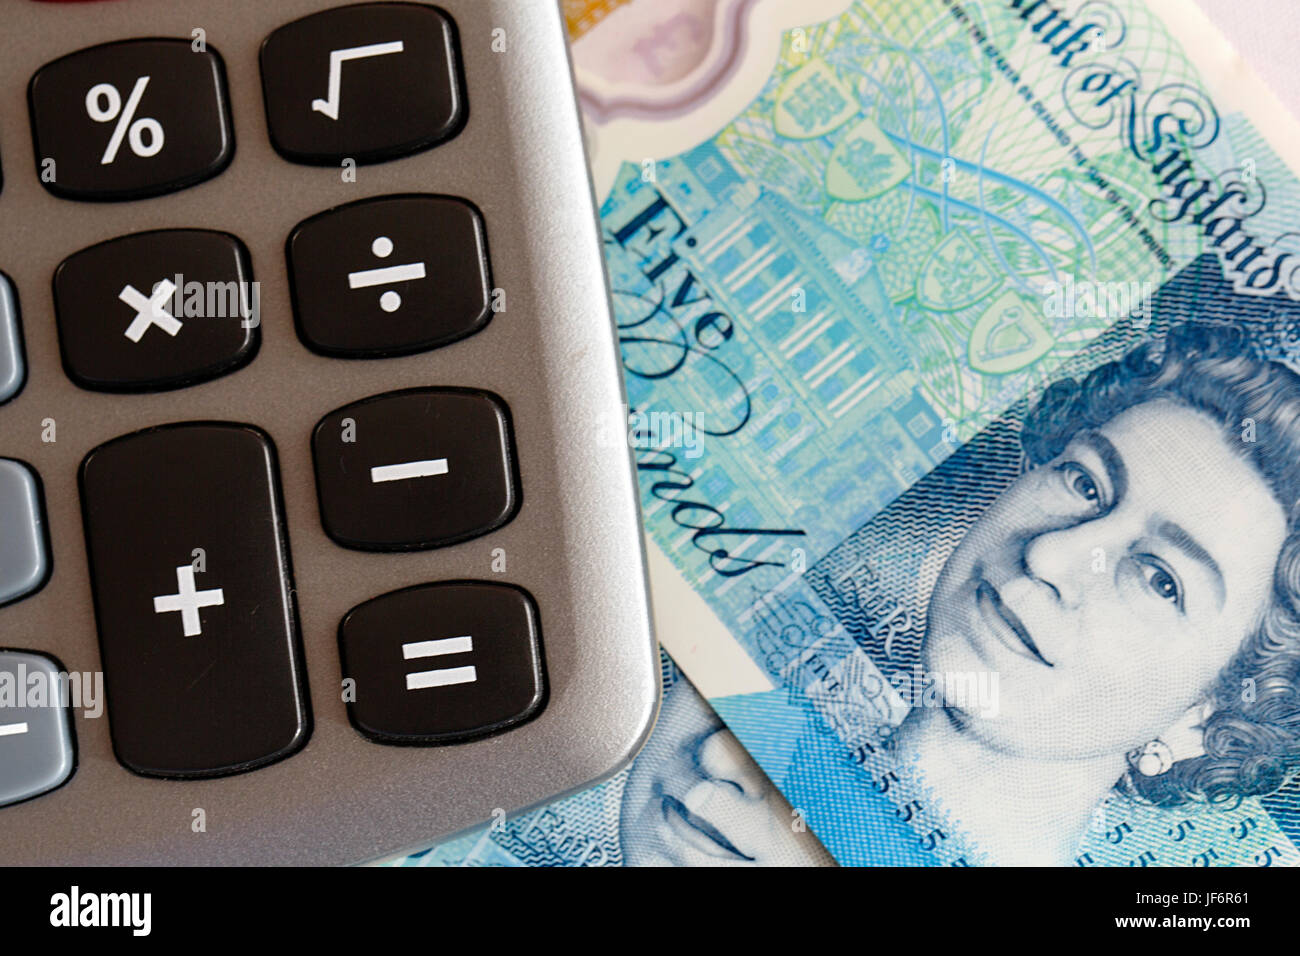 New Polymer Five Pouind Note with a Calculator - UK - Stock Image